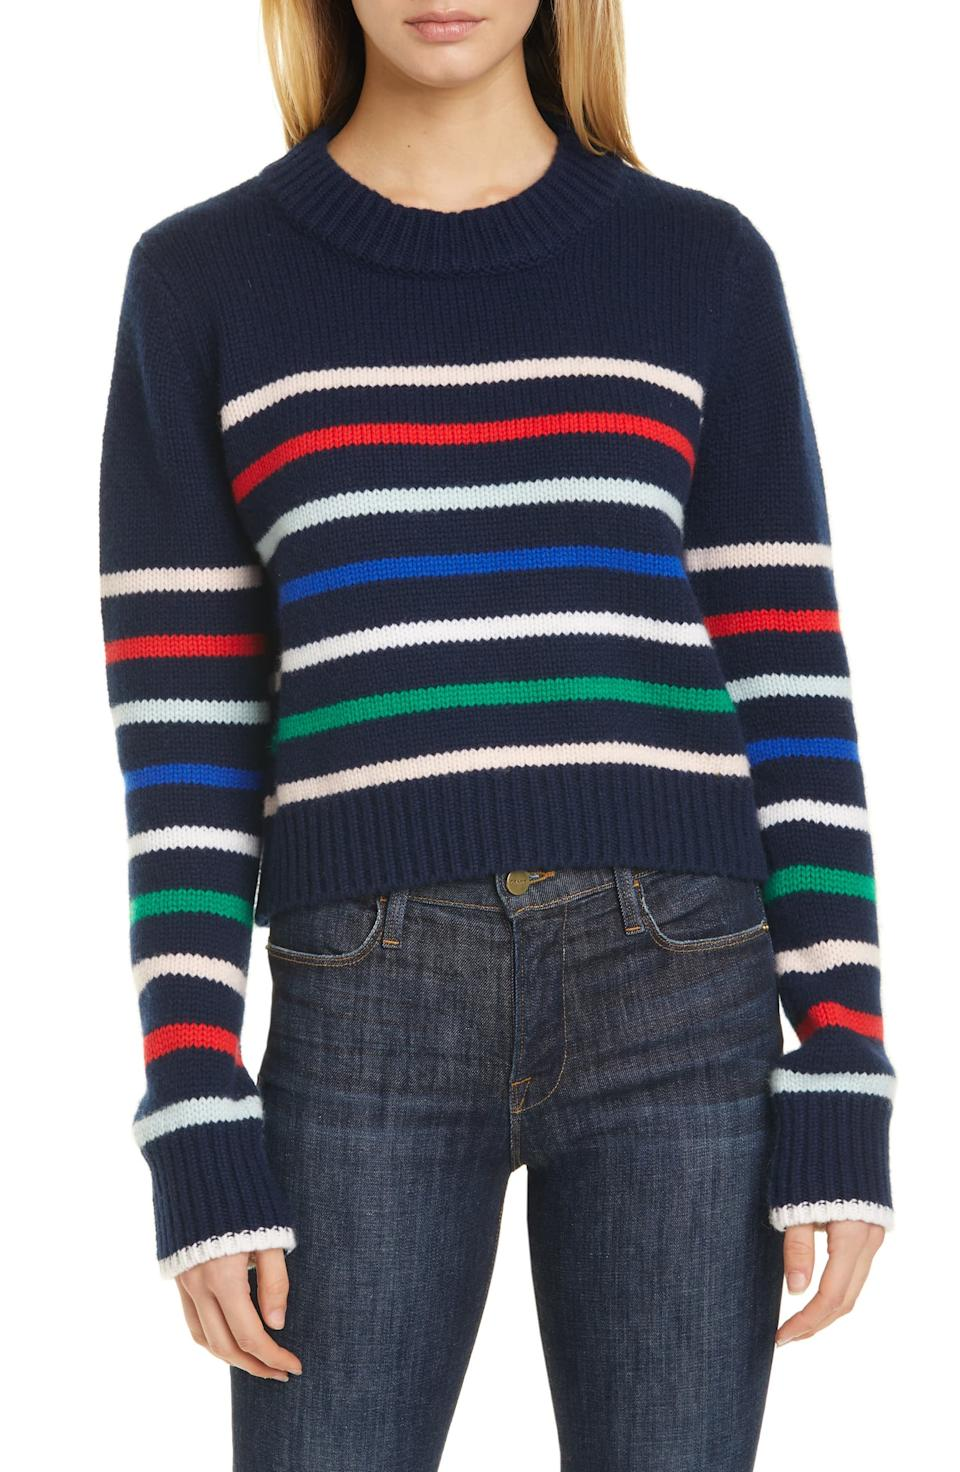 La Ligne Mini Maren Wool & Cashmere Sweater. Image via Nordstrom.